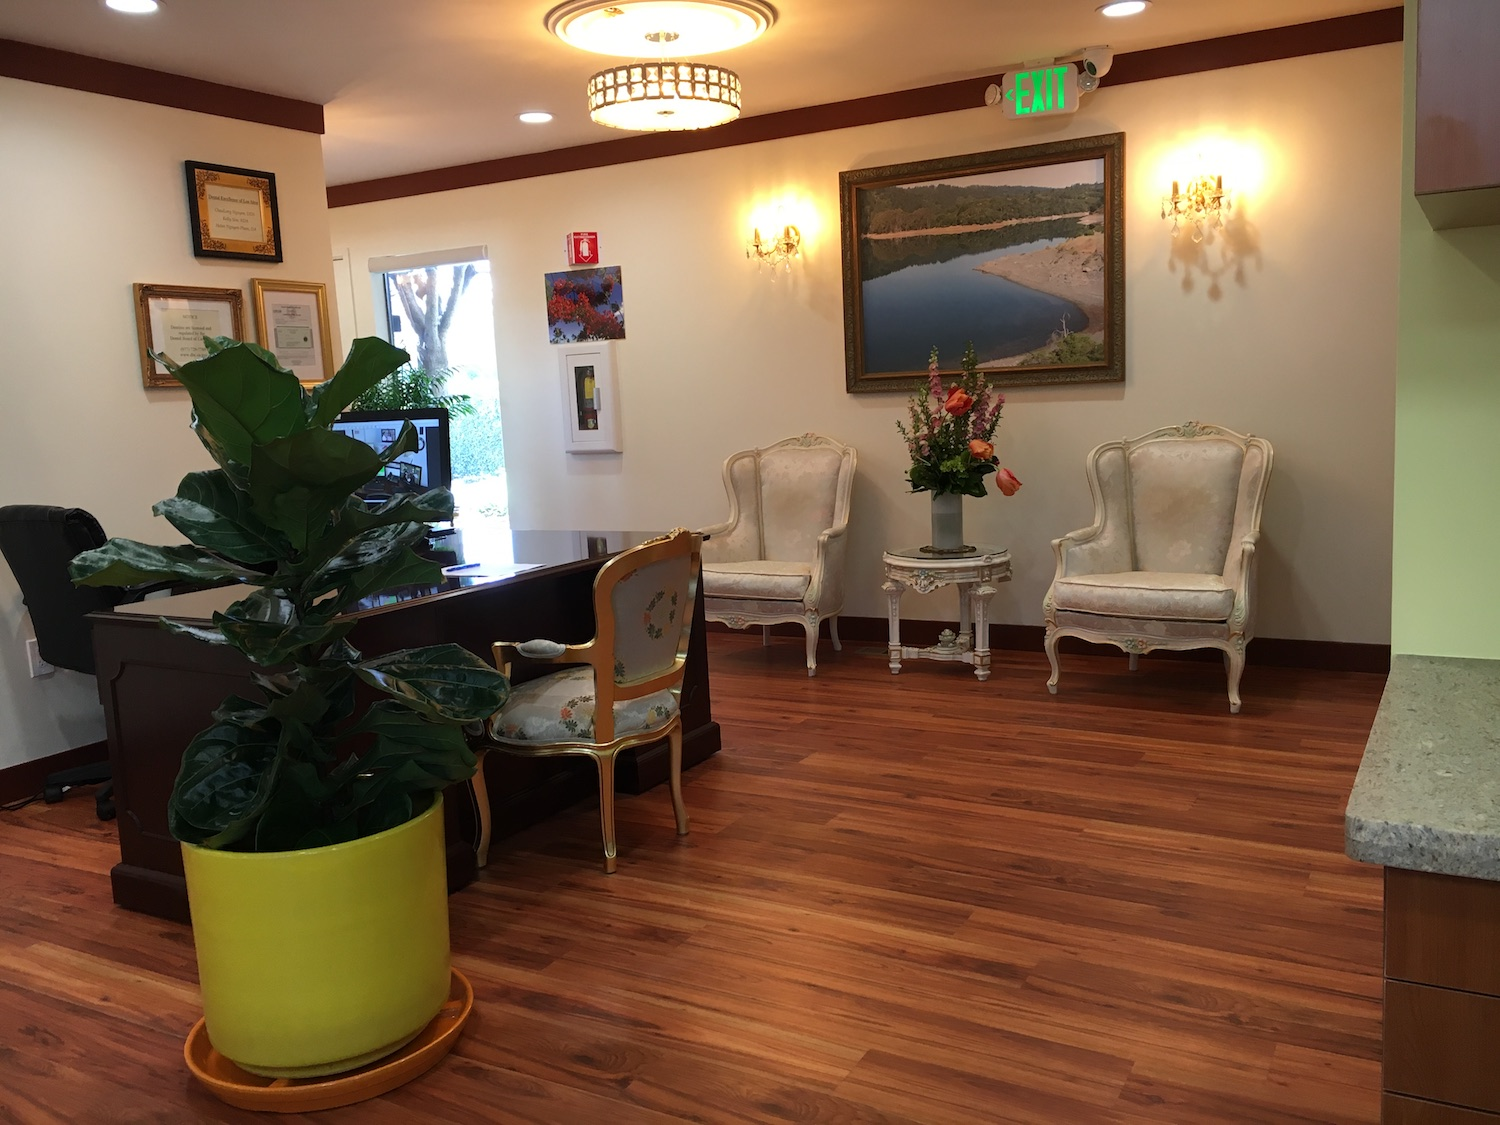 Los Altos Dental Office